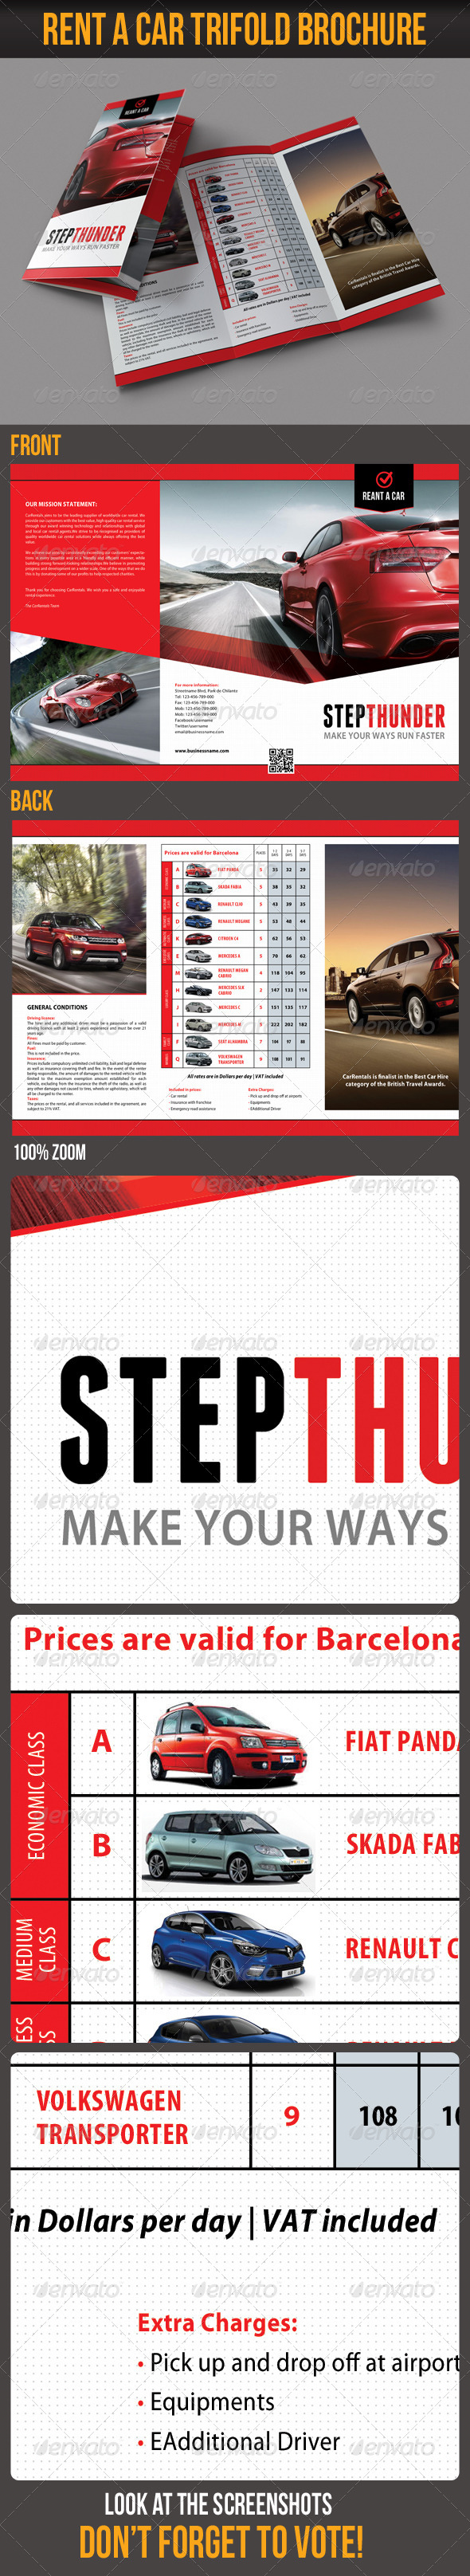 GraphicRiver Rent A Car Trifold Brochure 5501308